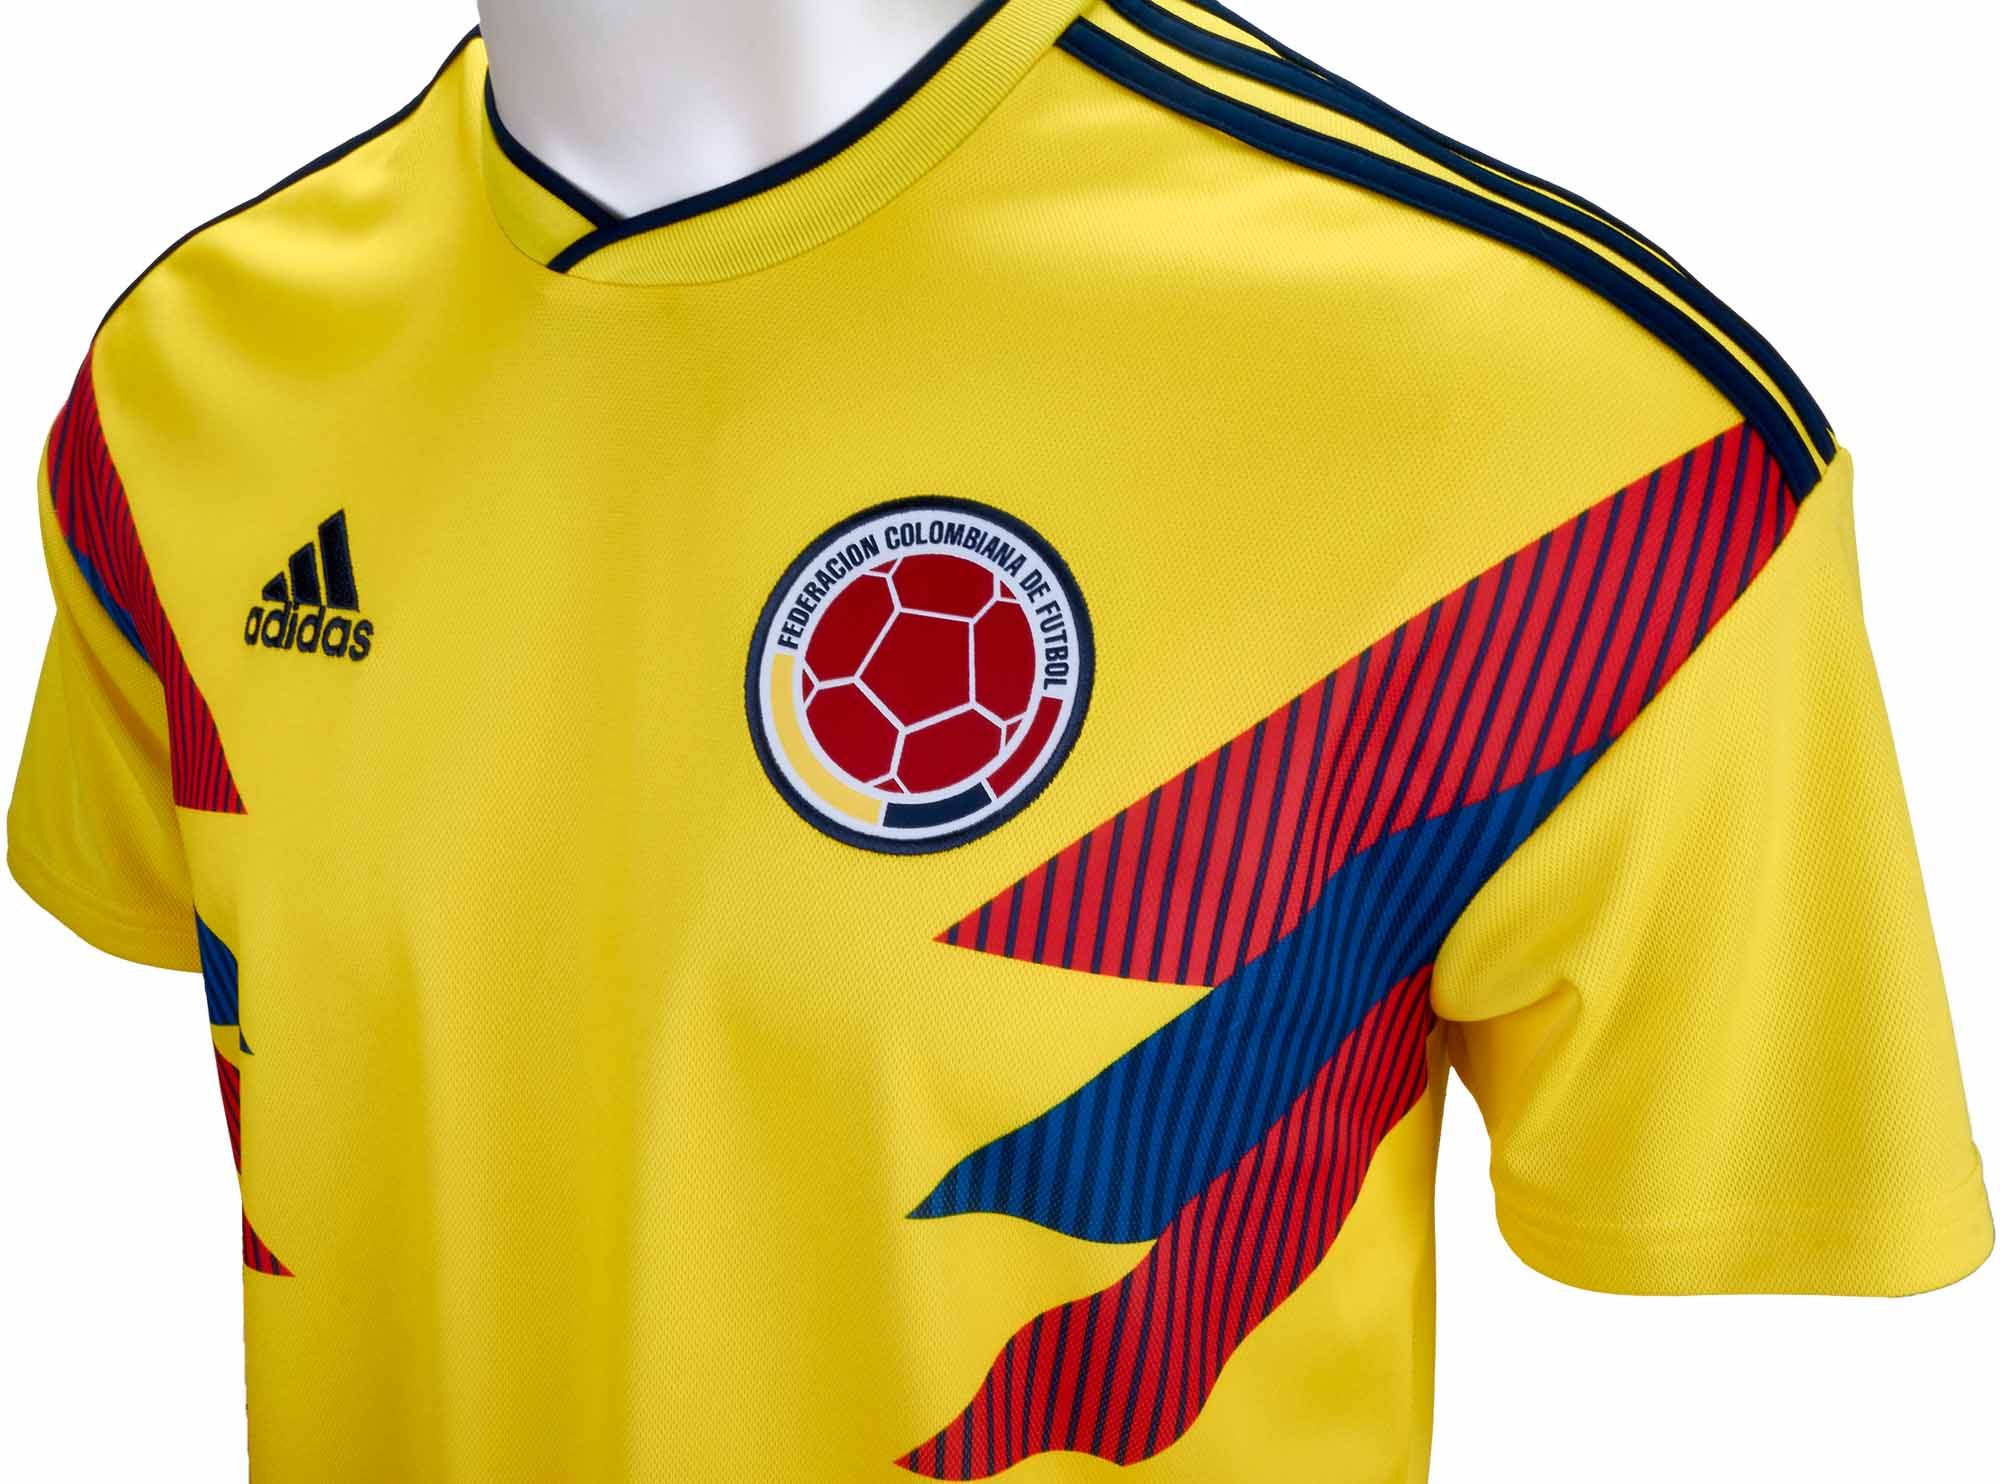 be7f7aee8d0 low cost adidas boys soccer colombia home replica player jersey yxl 0a26a  e23a1  coupon code for home licensed soccer jerseys 39ac7 4fbcc